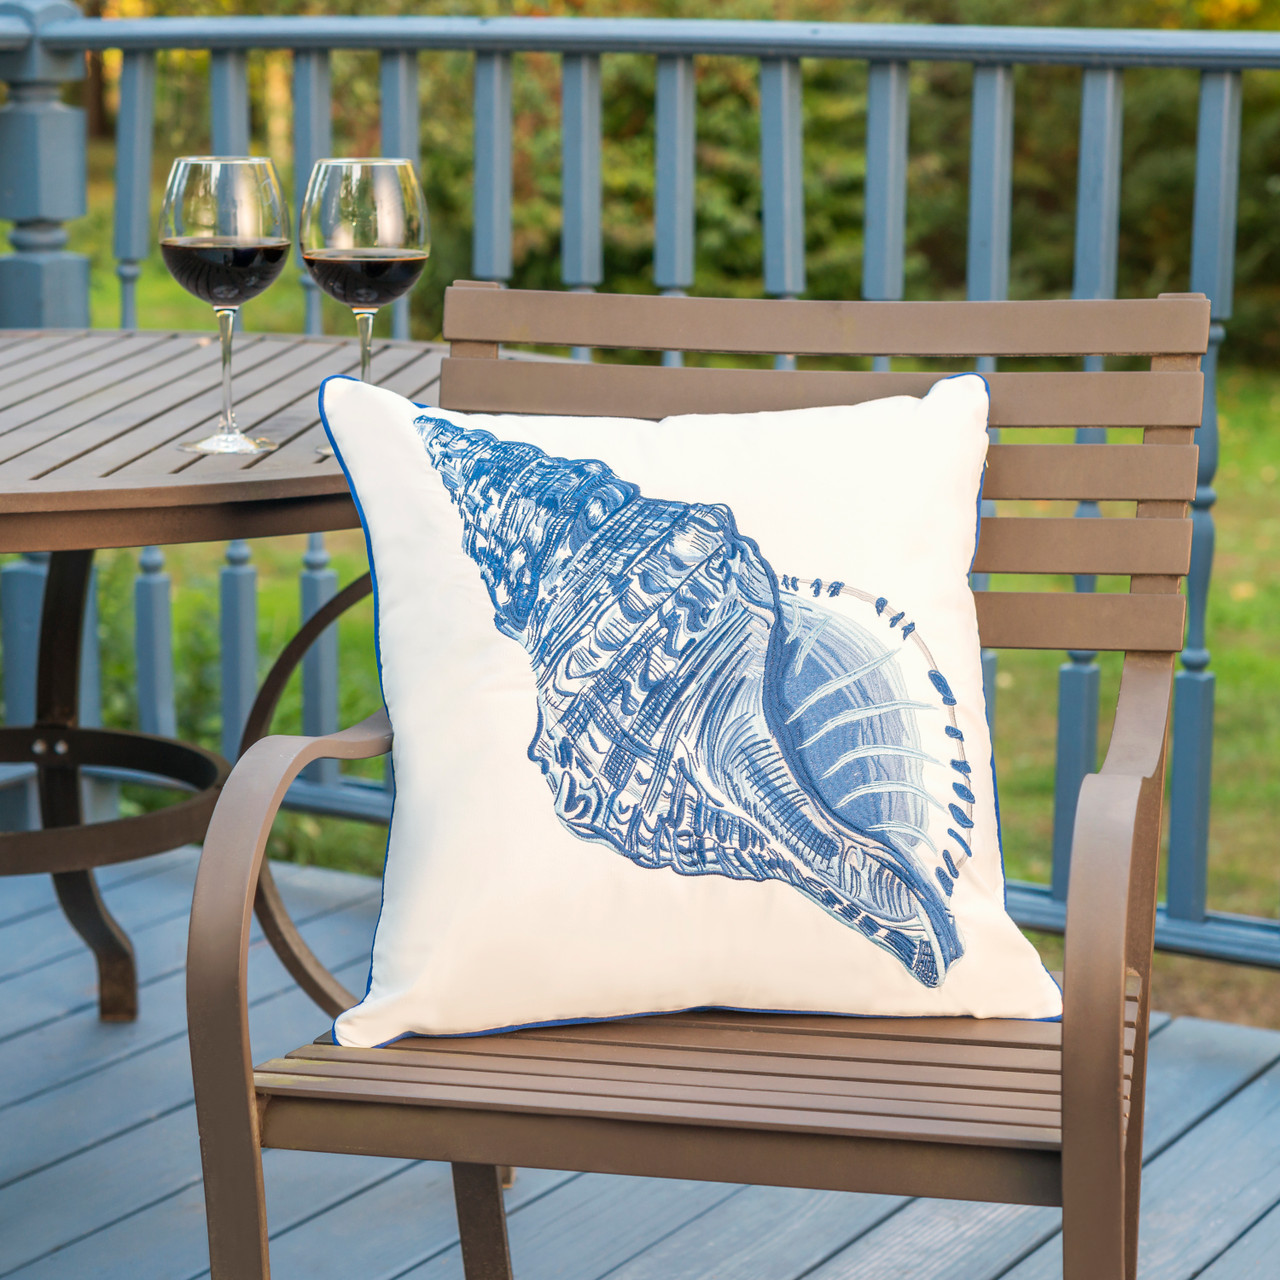 Blue Conch Shell Outdoor Throw Pillow with Sunbrella Fabric - Lifestyle